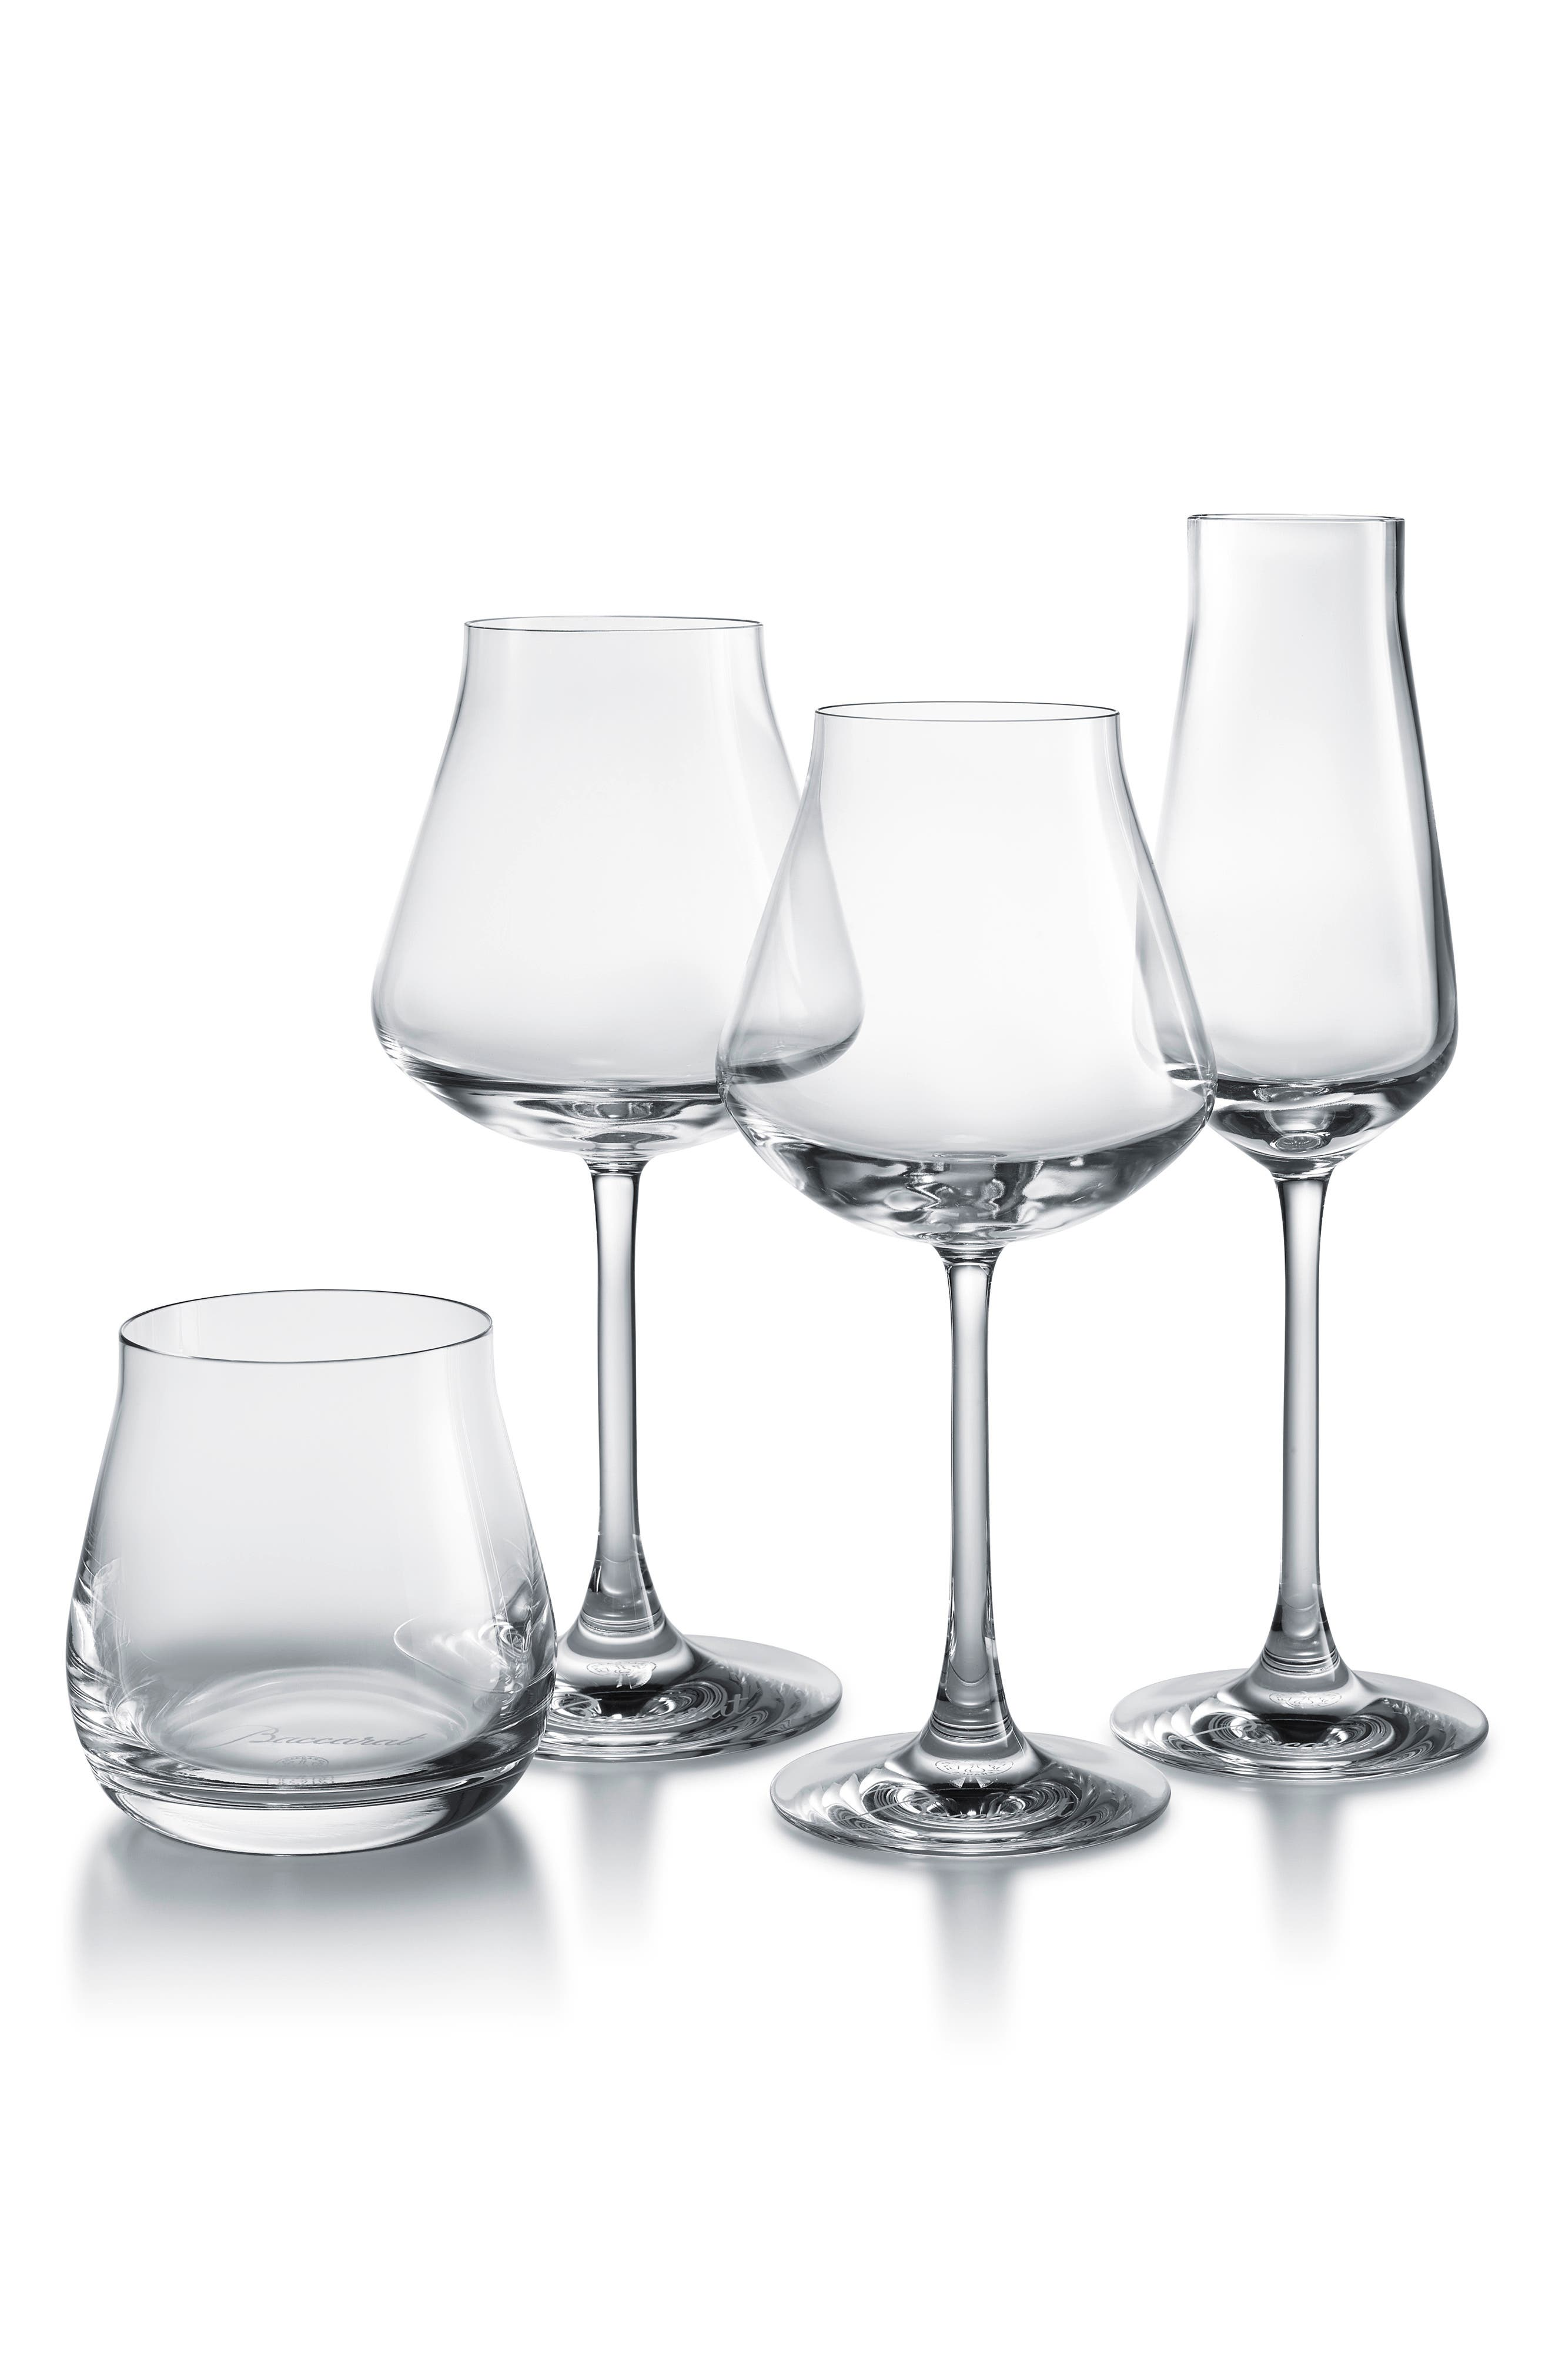 Chateau Baccarat Degustation Set of 4 Lead Crystal Tasting Glasses,                         Main,                         color, CLEAR